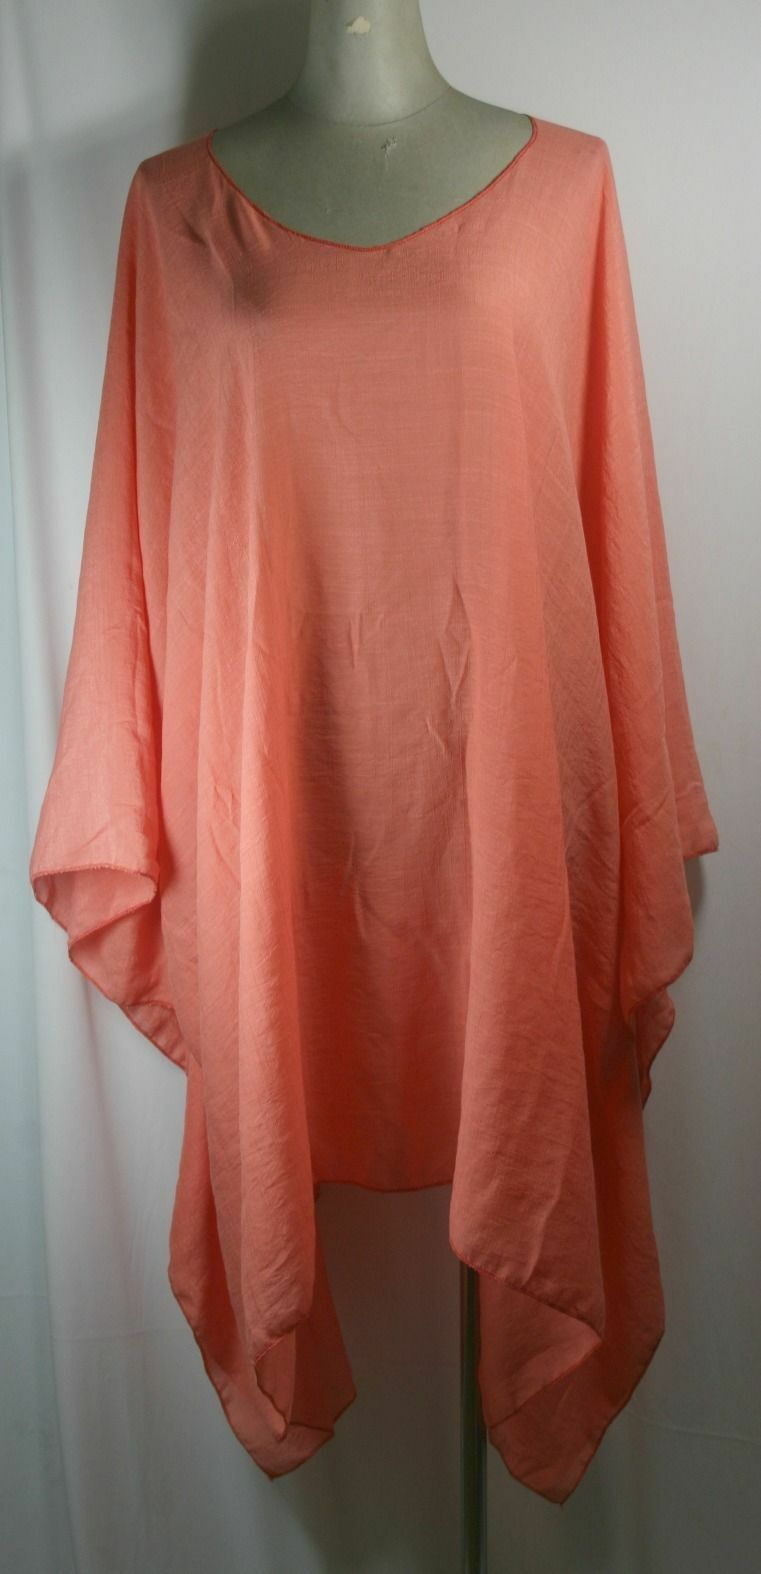 Plus size poncho style top tunic, orange color, size 1X-2X or 3X-4X, handmade